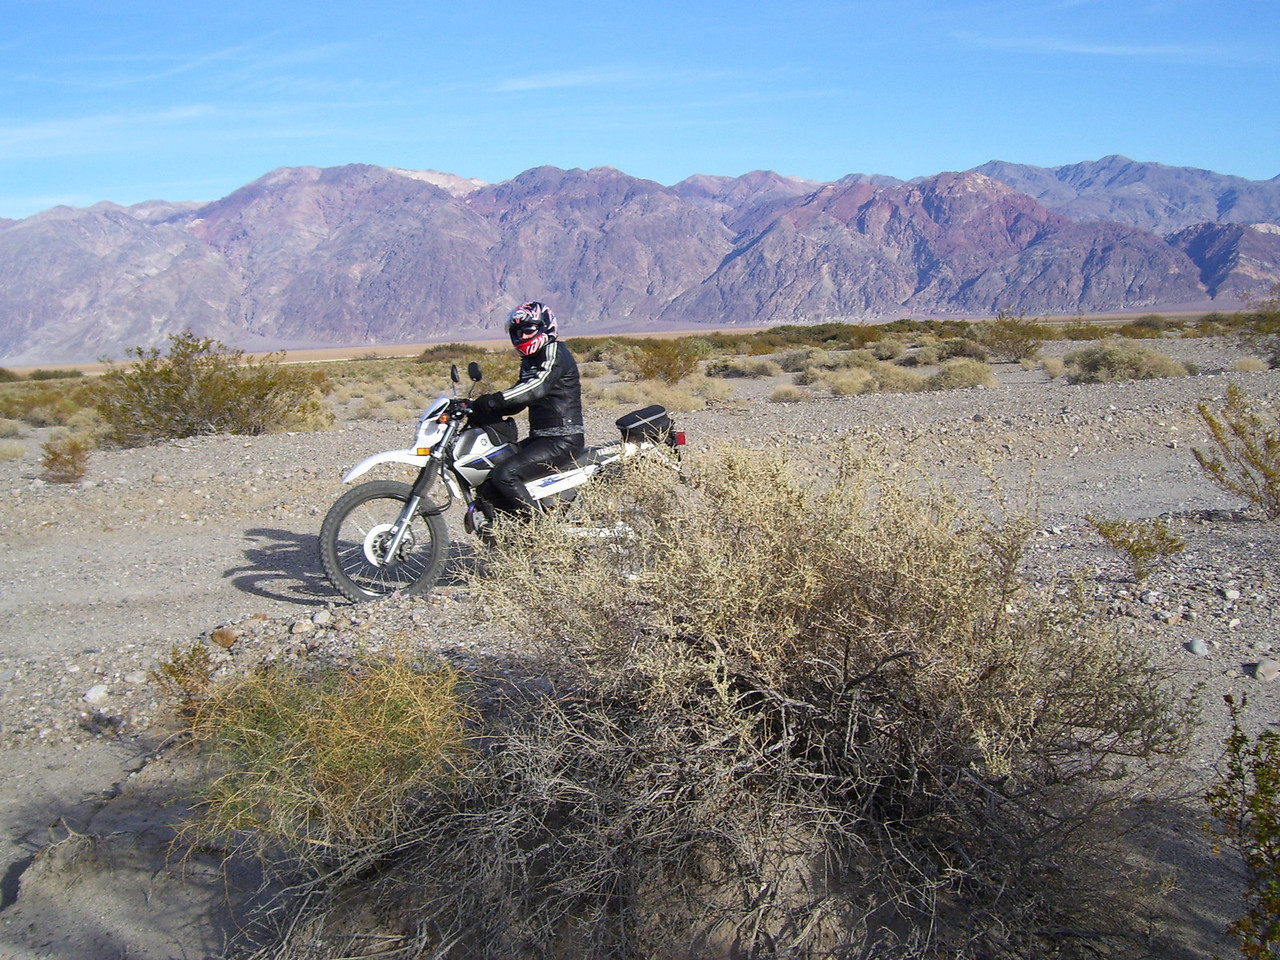 Lorrie on Sylvia's XT 225. I was riding the big Triumph for her on the 50 miles of dirt road.